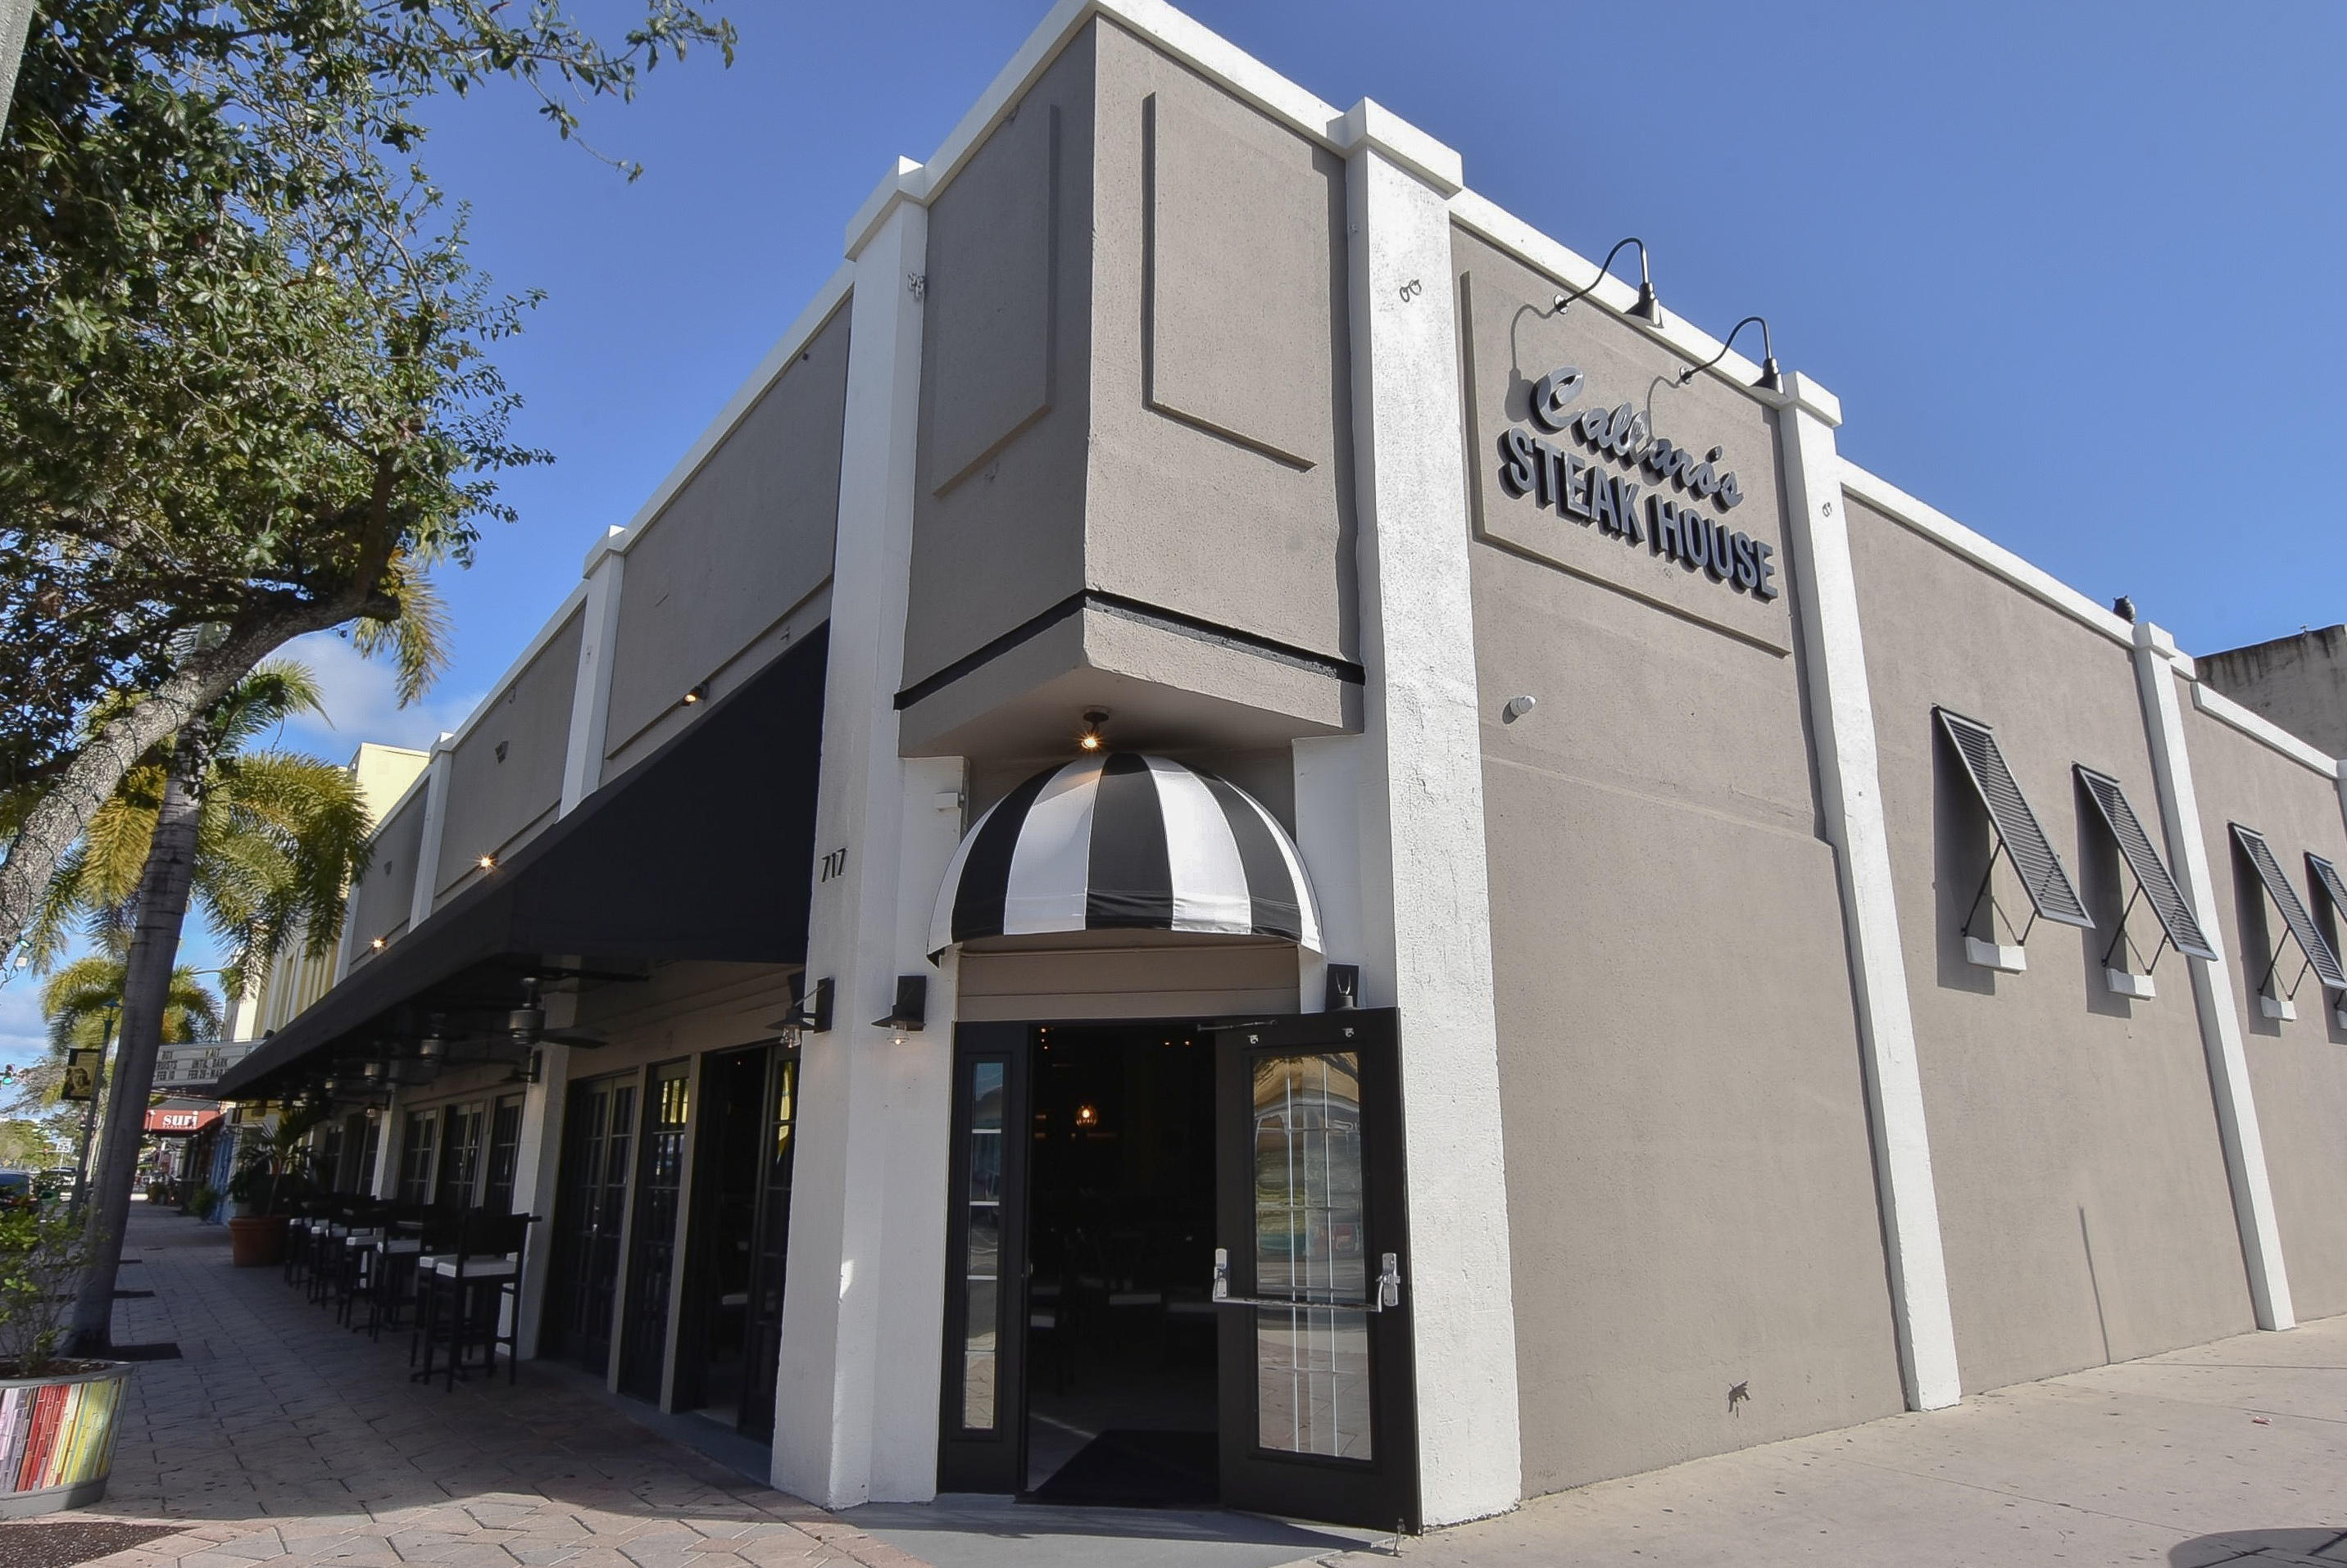 PREMIER BUSINESS & REAL ESTATE IN SUPREME LOCATION IN THE CENTER OF LAKE WORTH'S DOWNTOWN ENTERTAINMENT DISTRICT! Well established successful Italian Steakhouse, 4,000 sq ft, 150 seats & 1500 wine bottle room.  Totally remodeled Kitchen & Dining Room.  Supreme location on the busiest corner of main strip.